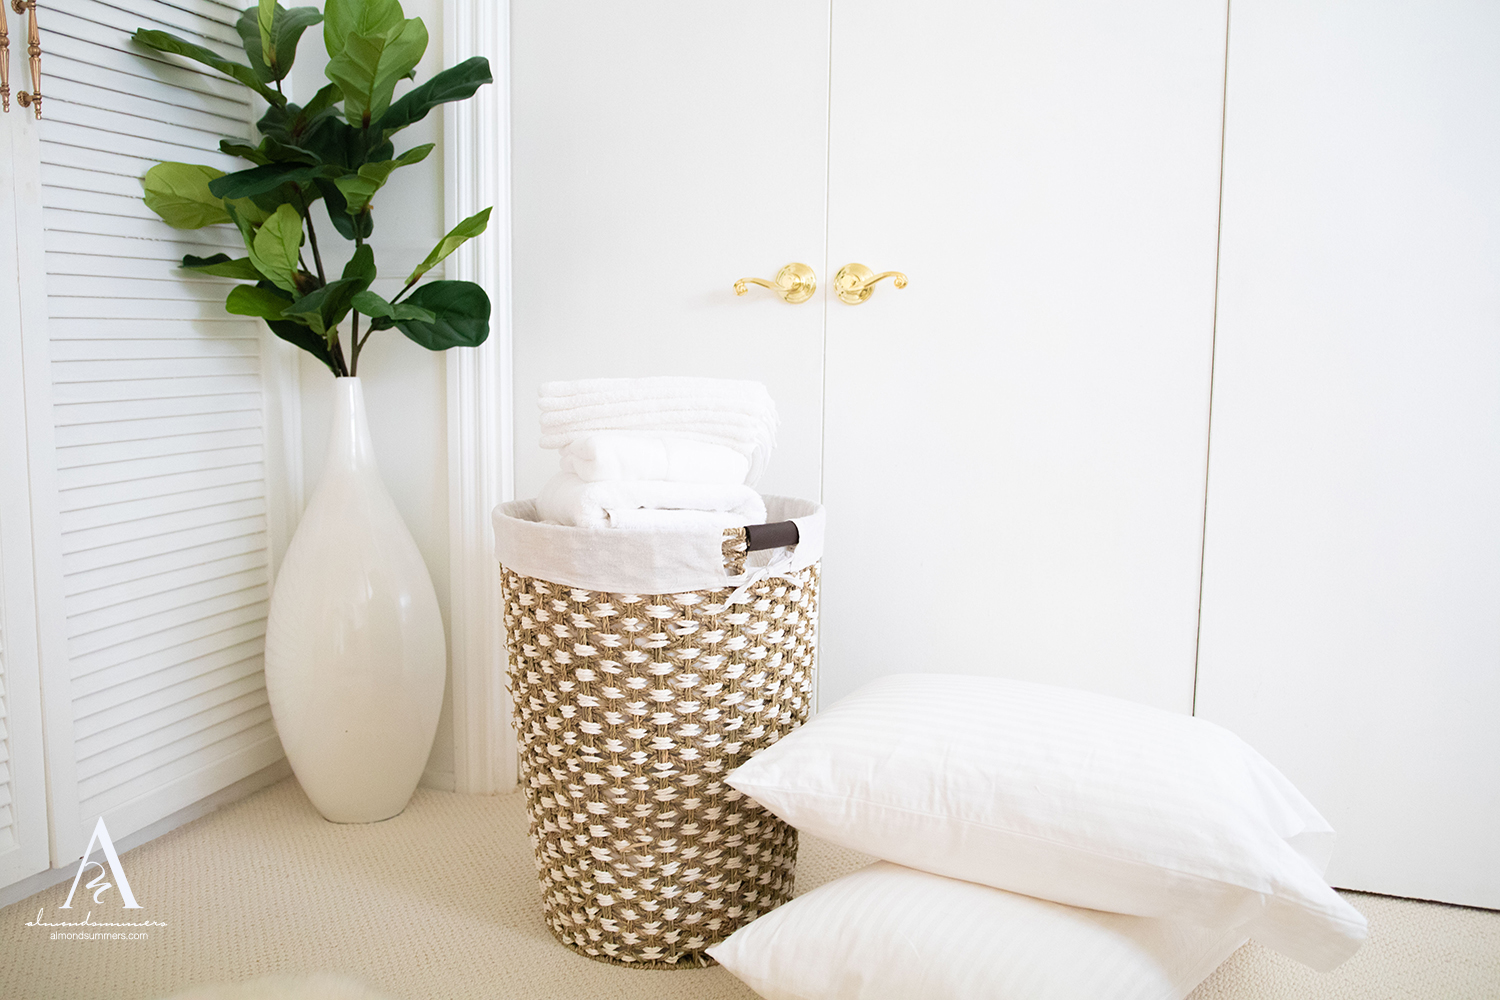 10 Tips To Prepare Your Home For Overnight Guests